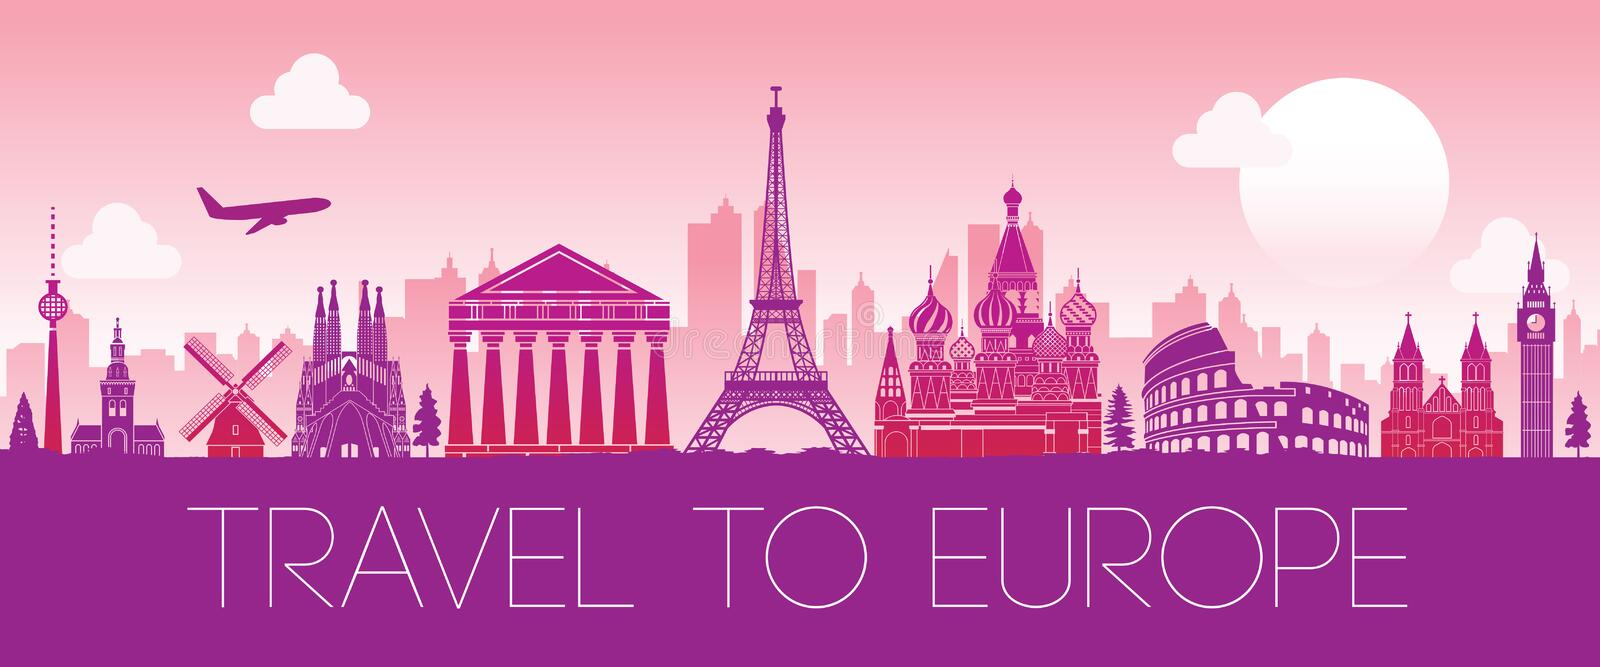 Top famous landmark of Europe,silhouette design pink color royalty free illustration